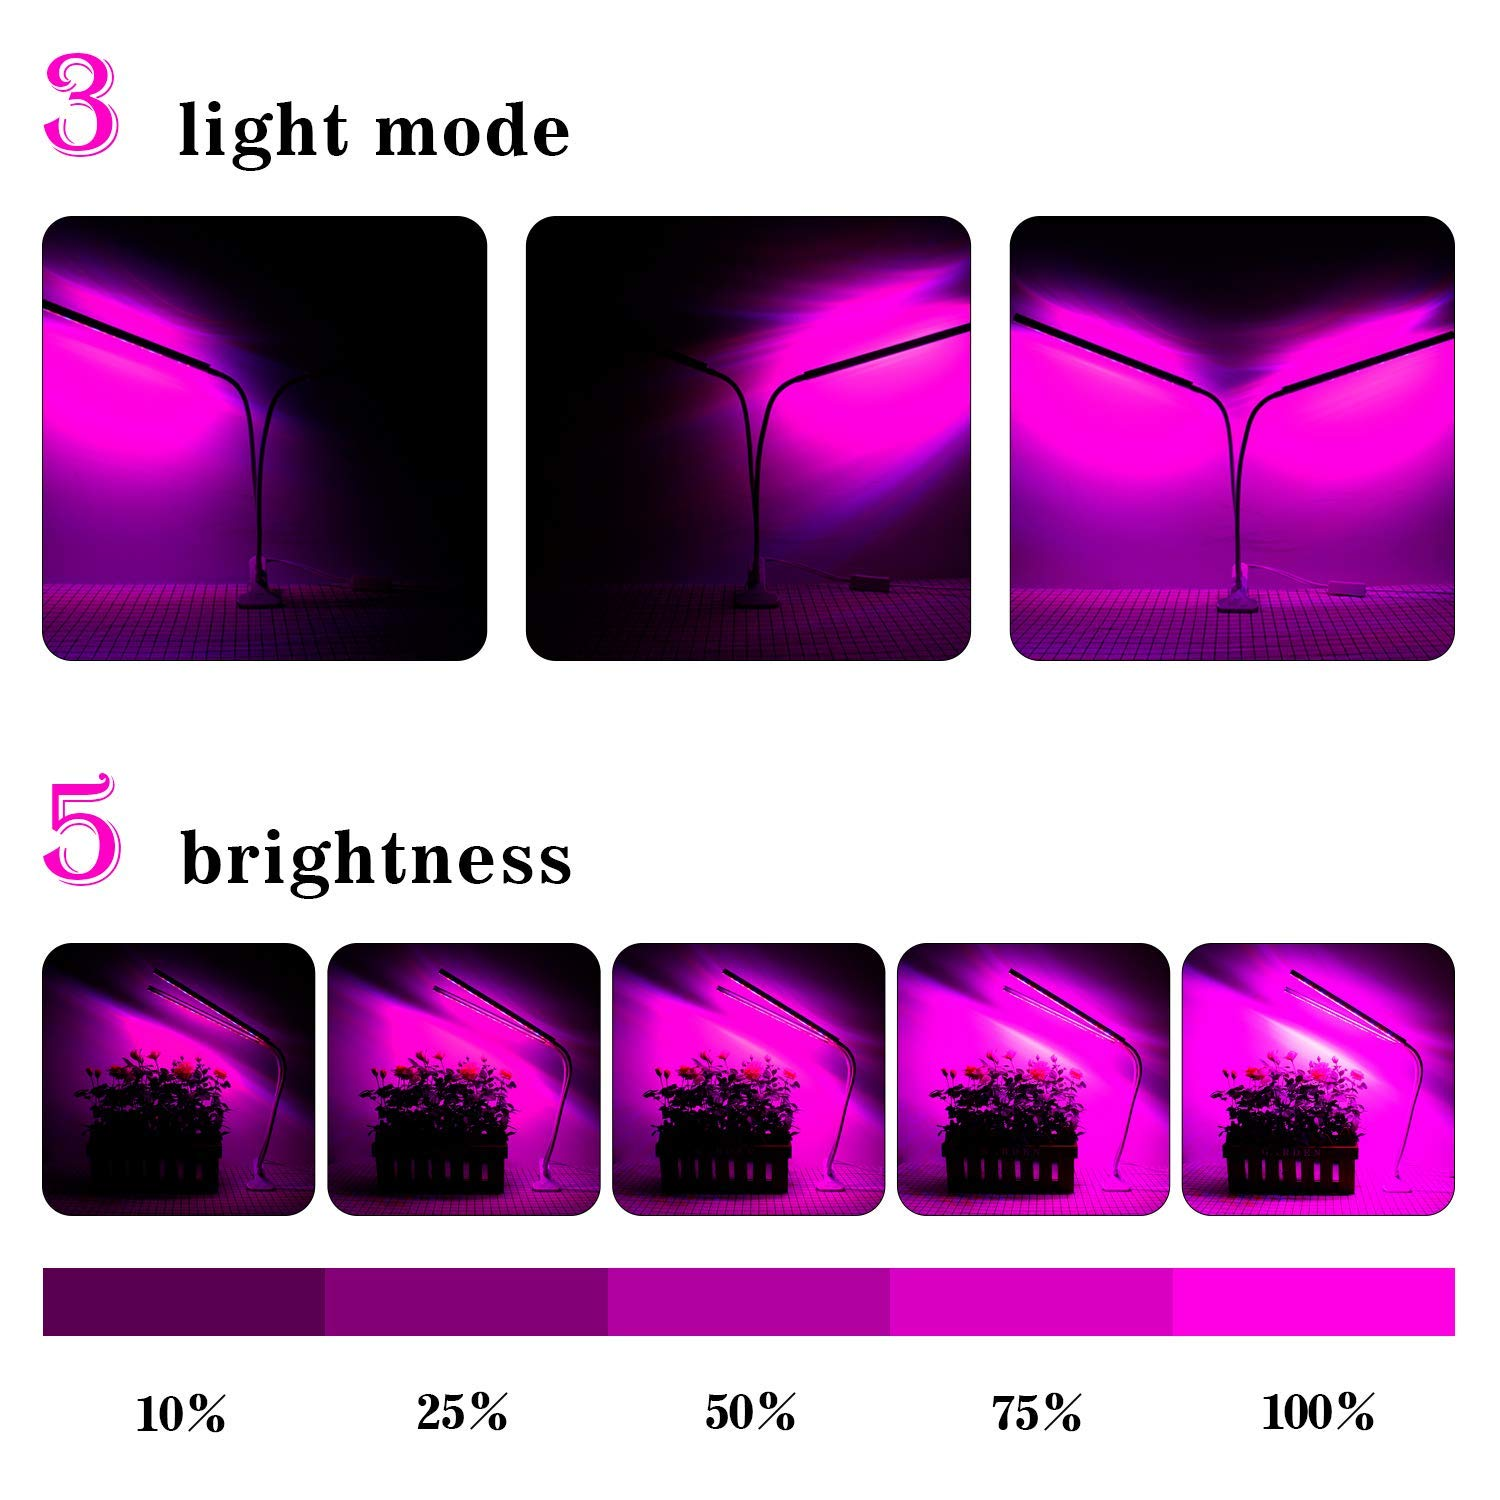 OxyLED Grow Light for Indoor Plants, Timing Function Dual Head Plant Light, 36 LED 5 Dimmable Levels Grow Lamp with Flexible Gooseneck for Hydroponics Greenhouse Gardening by OxyLED (Image #2)